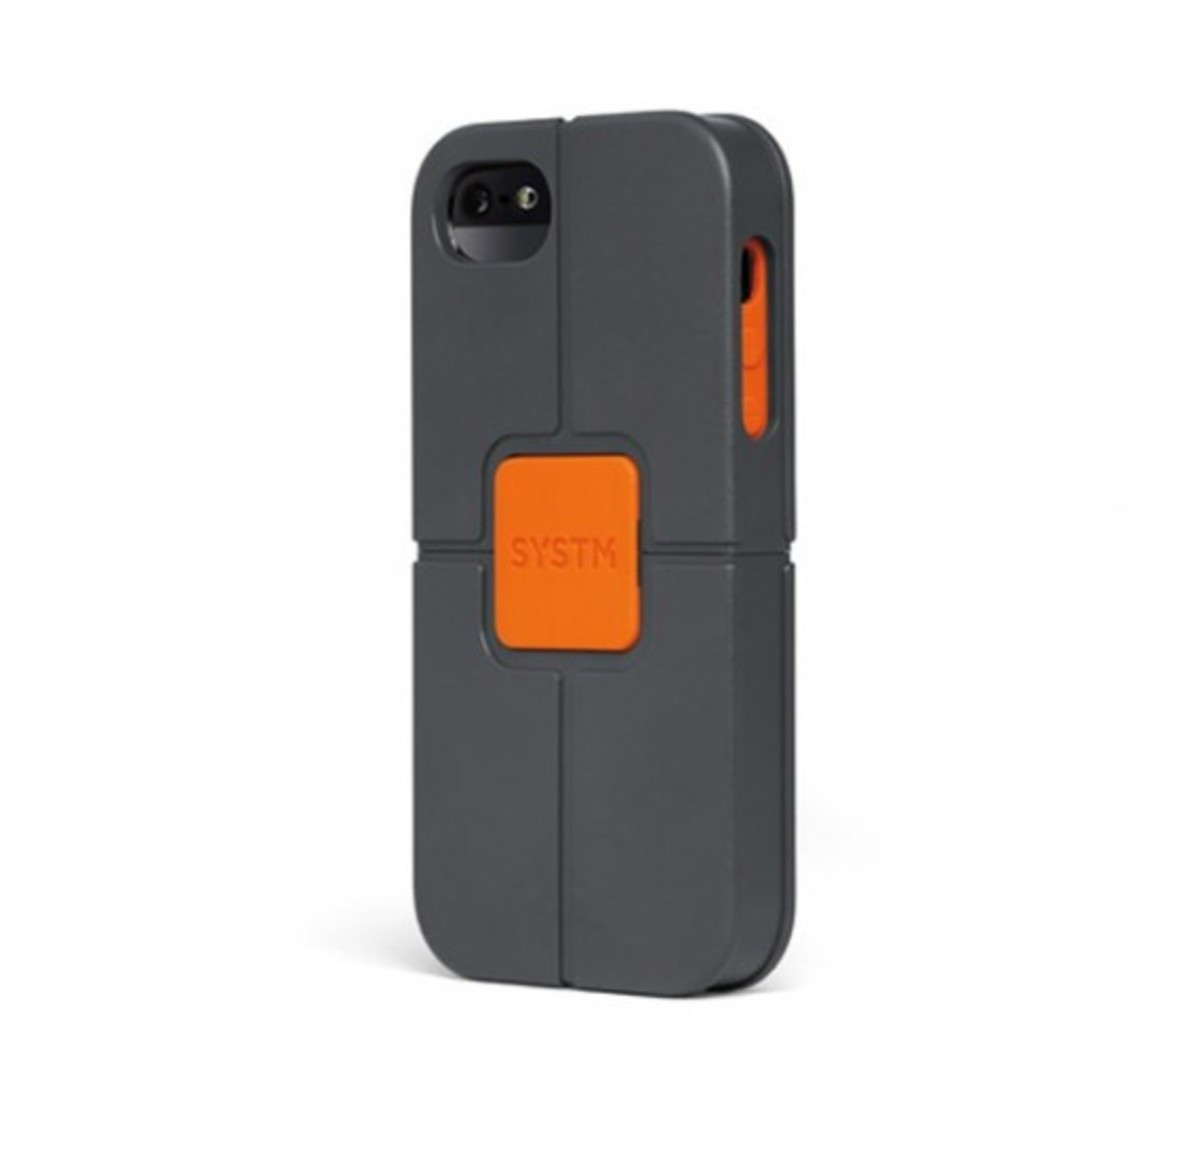 systm-iphone-5-cases-01